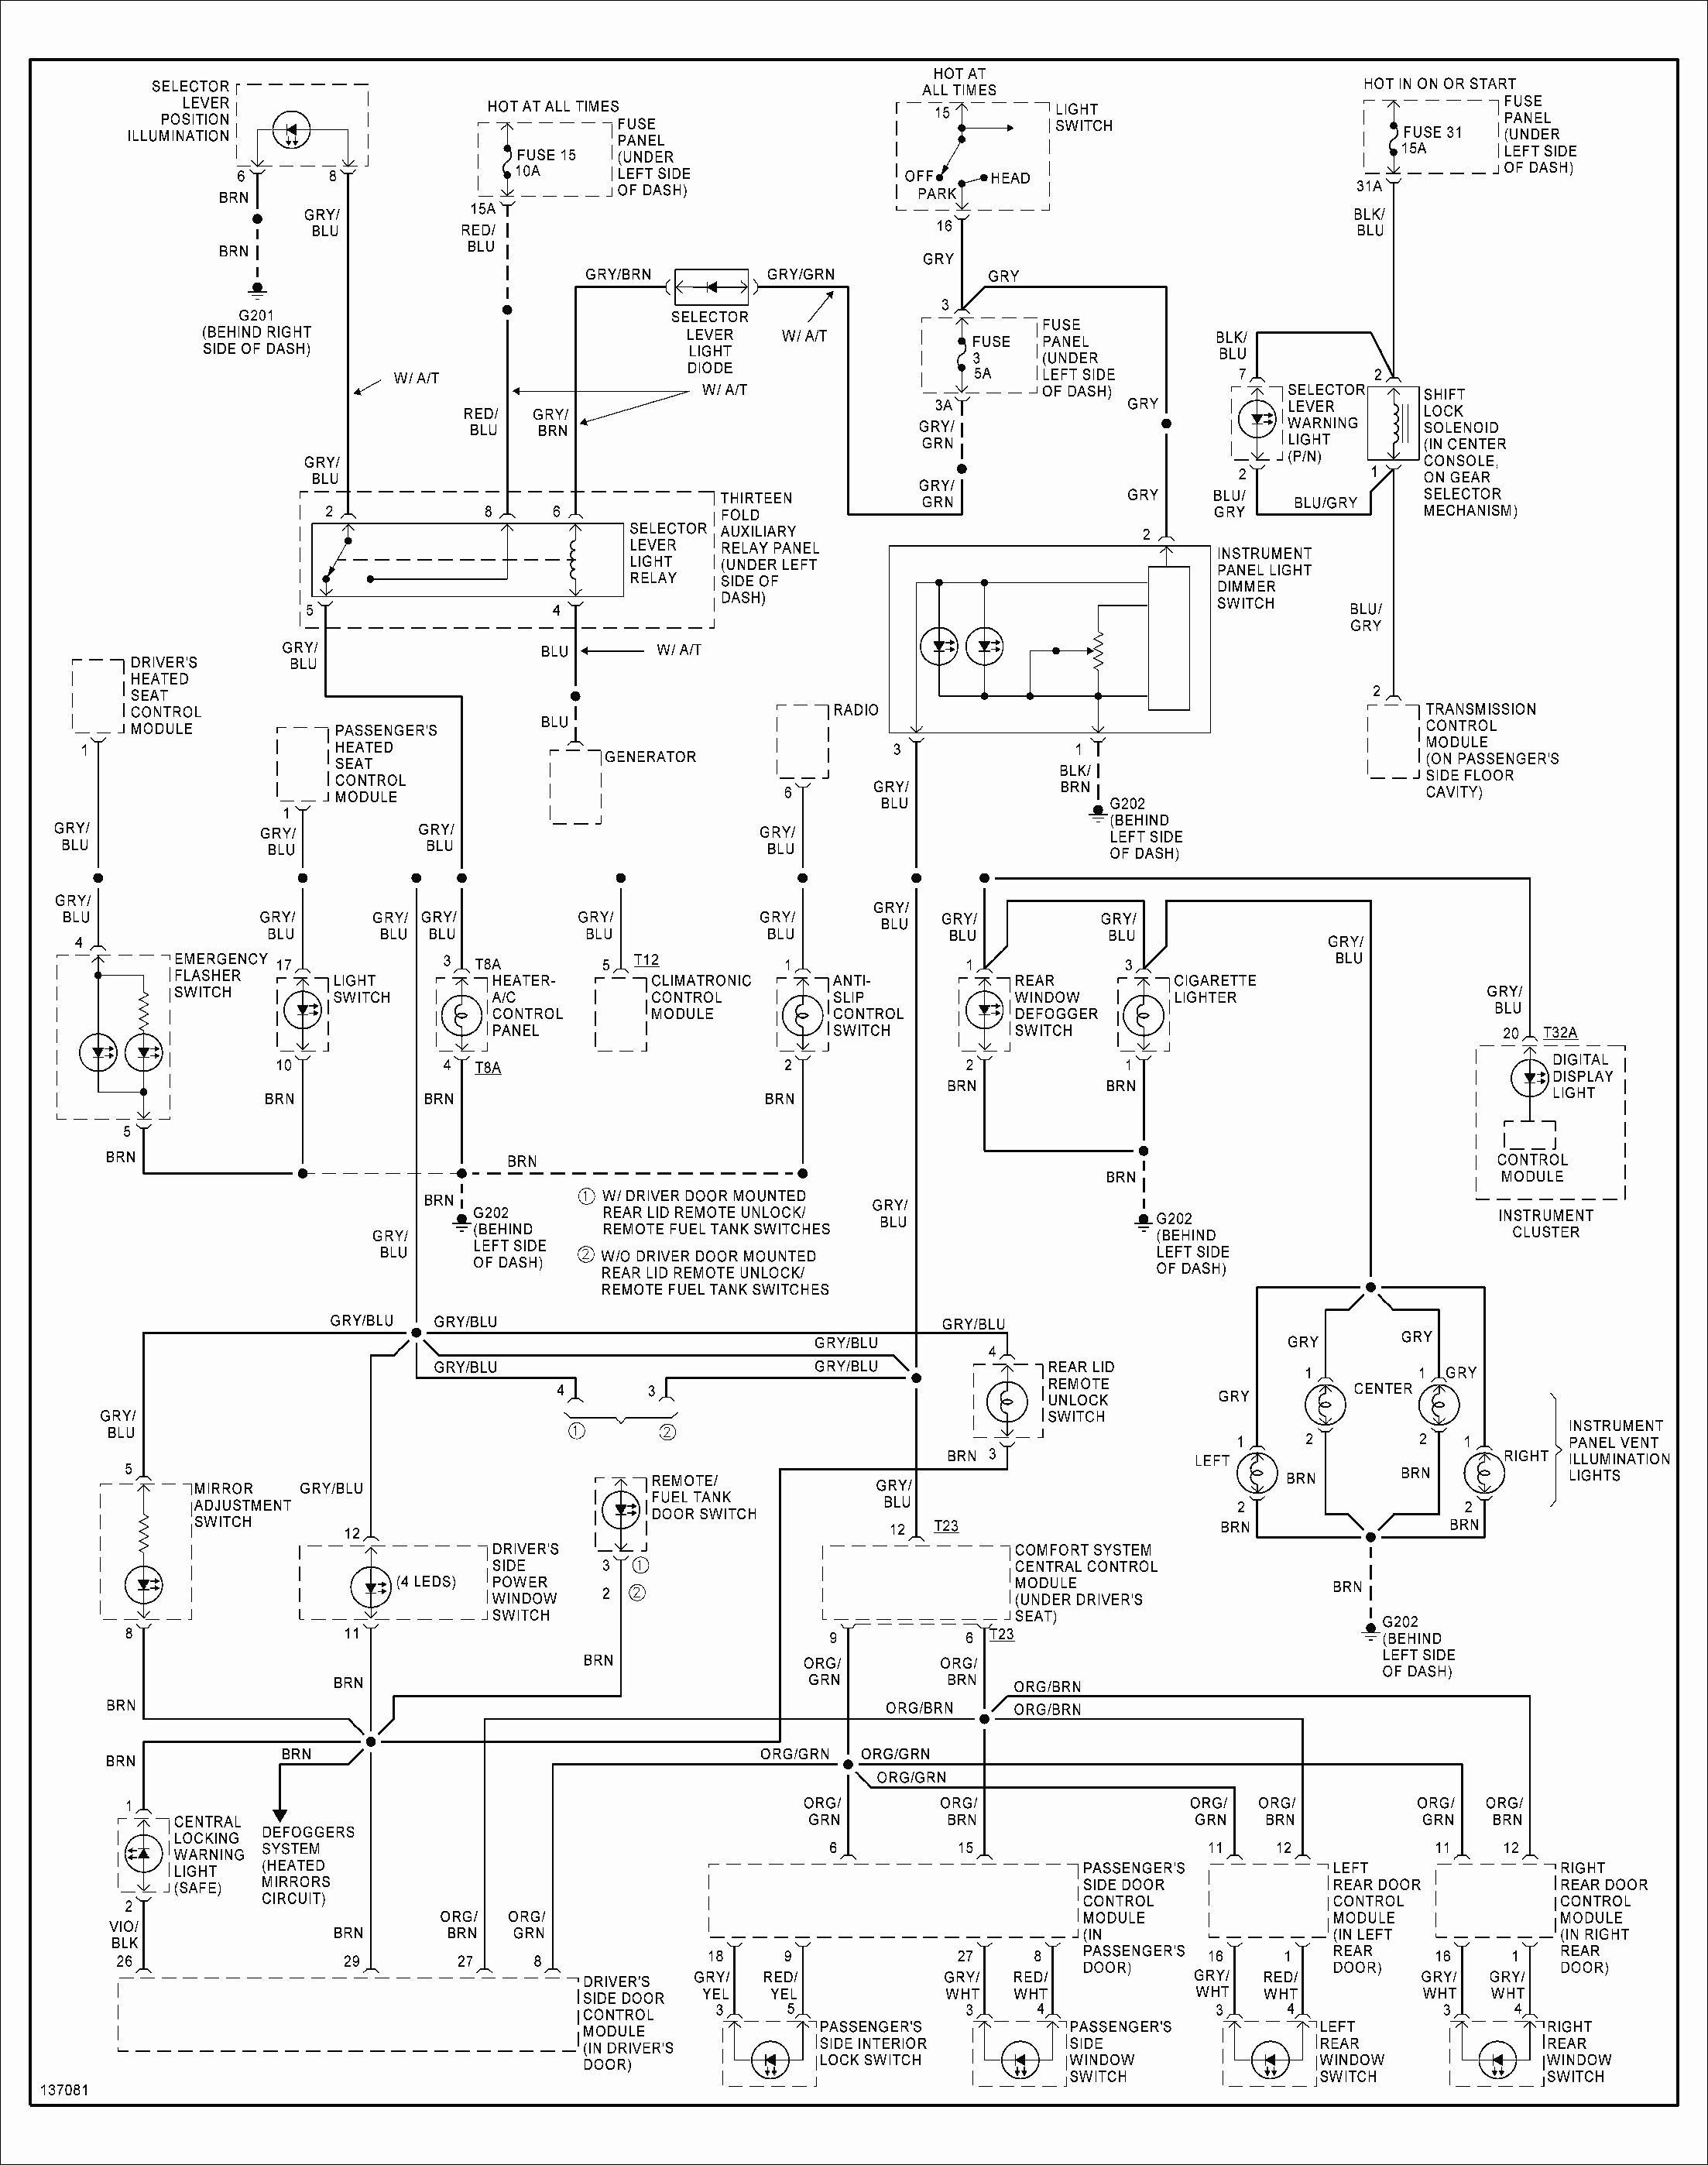 2003 Chevy Trailer Wiring Diagram - Carbonvote.mudit.blog • on chevy truck back bumper, chevy truck firewall replacement, chevy truck fuel system, 1955 chevy fuse panel diagram, chevy truck shift solenoid, chevy 5.7 tbi intake manifold, chevy factory stereo wiring diagrams, chevy truck firing order, chevy truck specifications, chevy 350 distributor cap wiring, chevy truck flywheel, chevy truck dash warning lights, chevy truck manual, chevy truck schematic, chevy truck water pump, chevy truck light wiring, chevy venture wiring-diagram, chevy truck wiring harness, chevy silverado maf sensor, chevy wiring schematics,